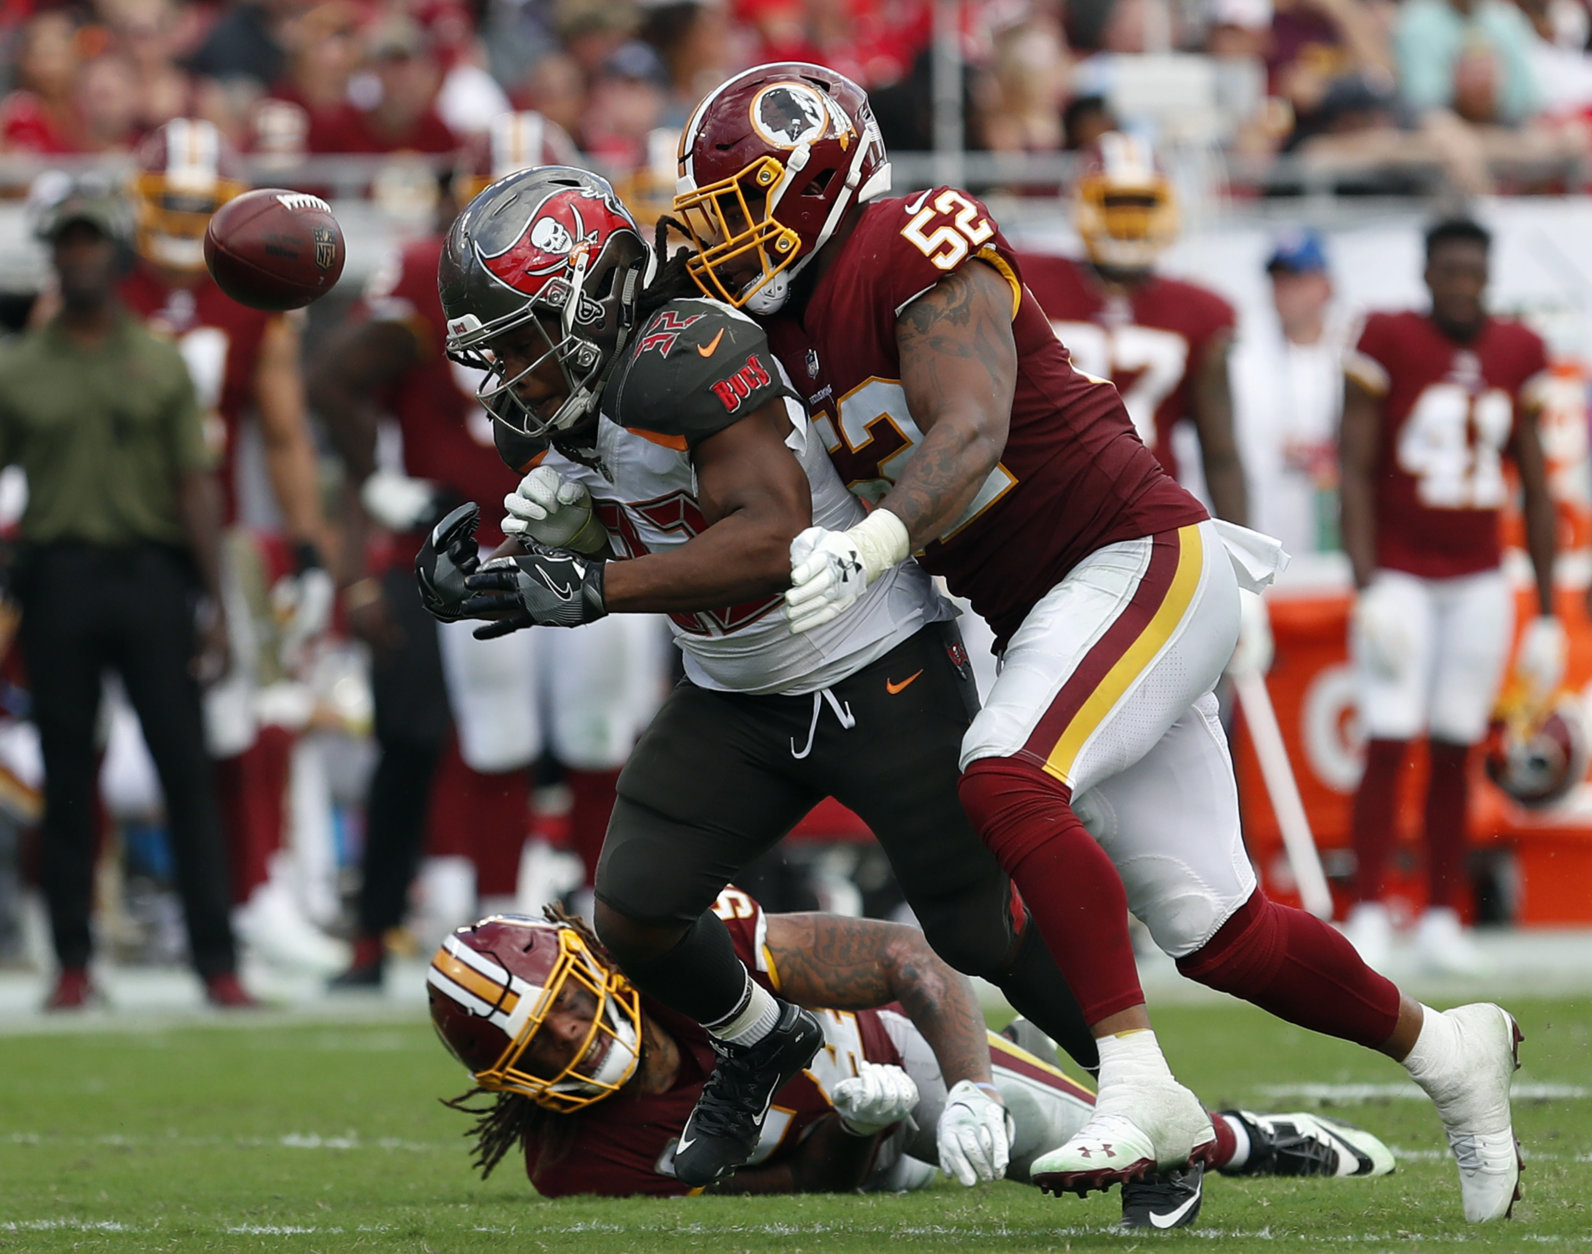 Tampa Bay Buccaneers running back Jacquizz Rodgers (32) fumbles as he is hit by Washington Redskins linebacker Ryan Anderson (52) during the second half of an NFL football game Sunday, Nov. 11, 2018, in Tampa, Fla. (AP Photo/Mark LoMoglio)